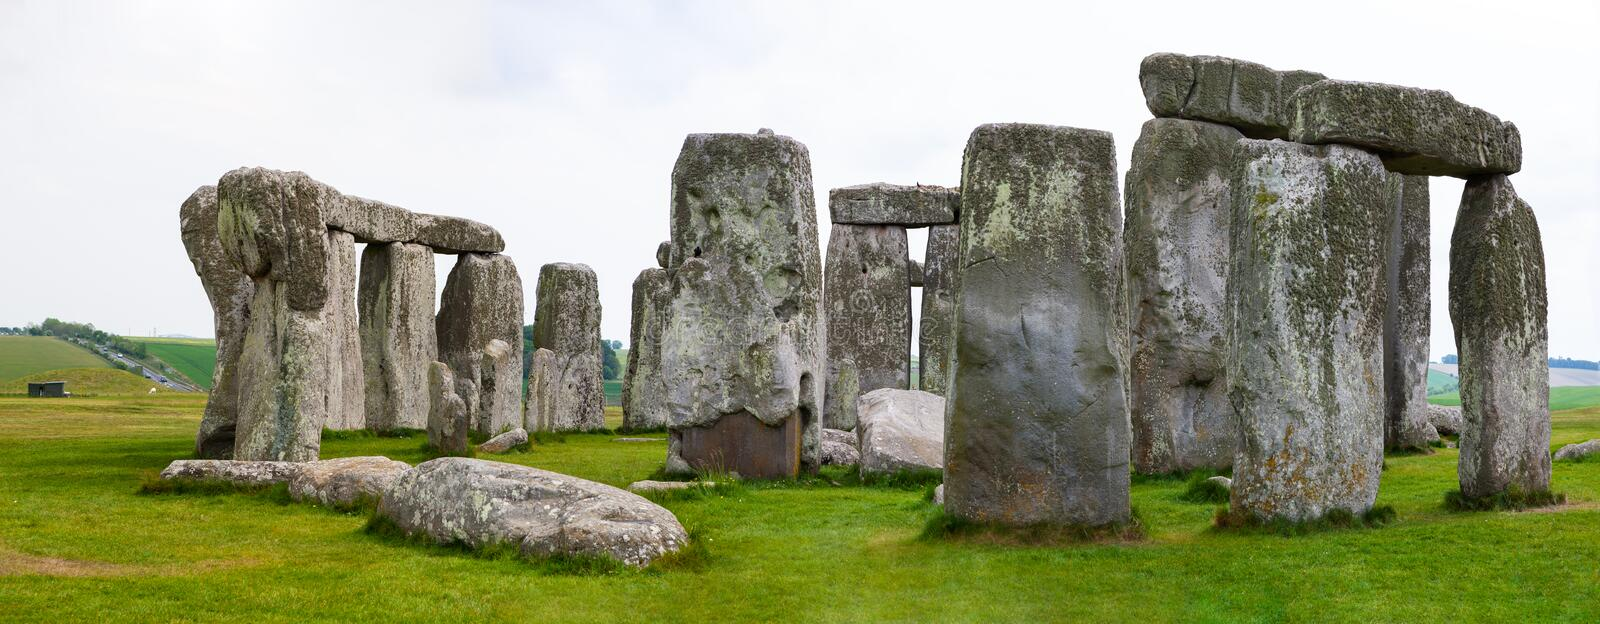 Stonehenge, Salisbury Plains, England. Neolithic prehistoric arrangement of large rocks in a circular formation stock photography